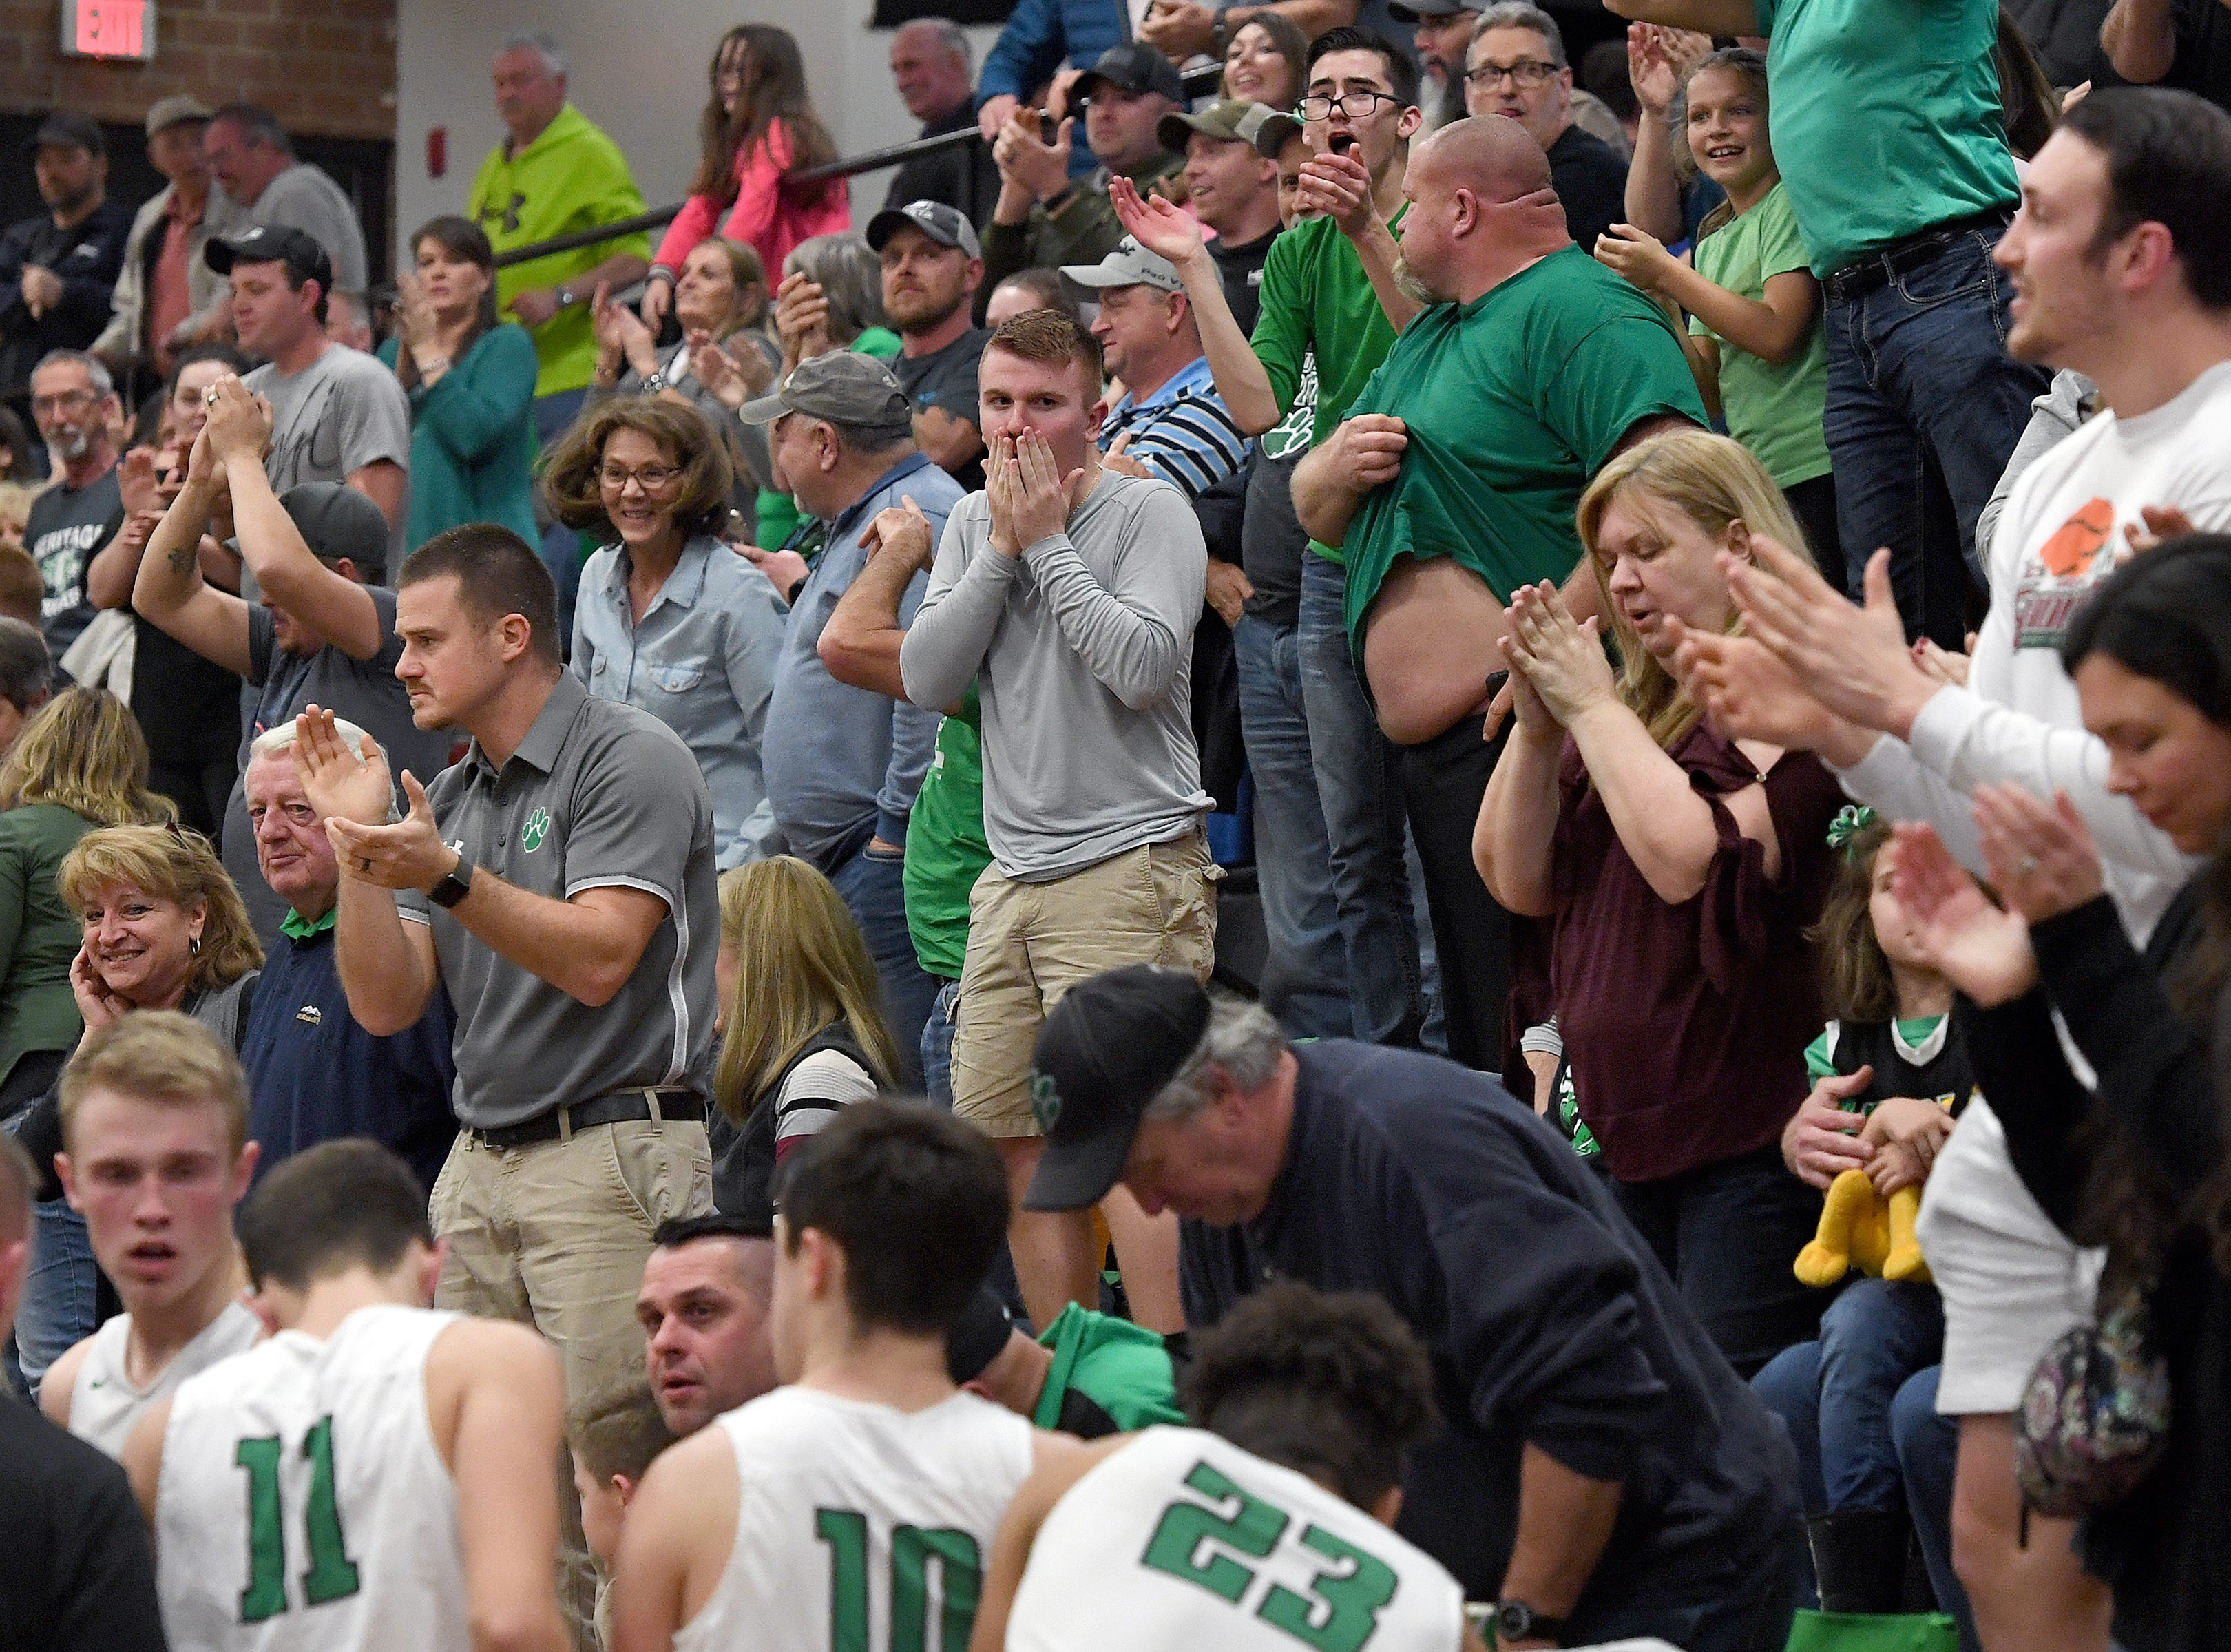 Mountain Heritage defeated Maiden 74-69 in overtime of their playoff game at Mountain Heritage High School on Feb. 28, 2019.